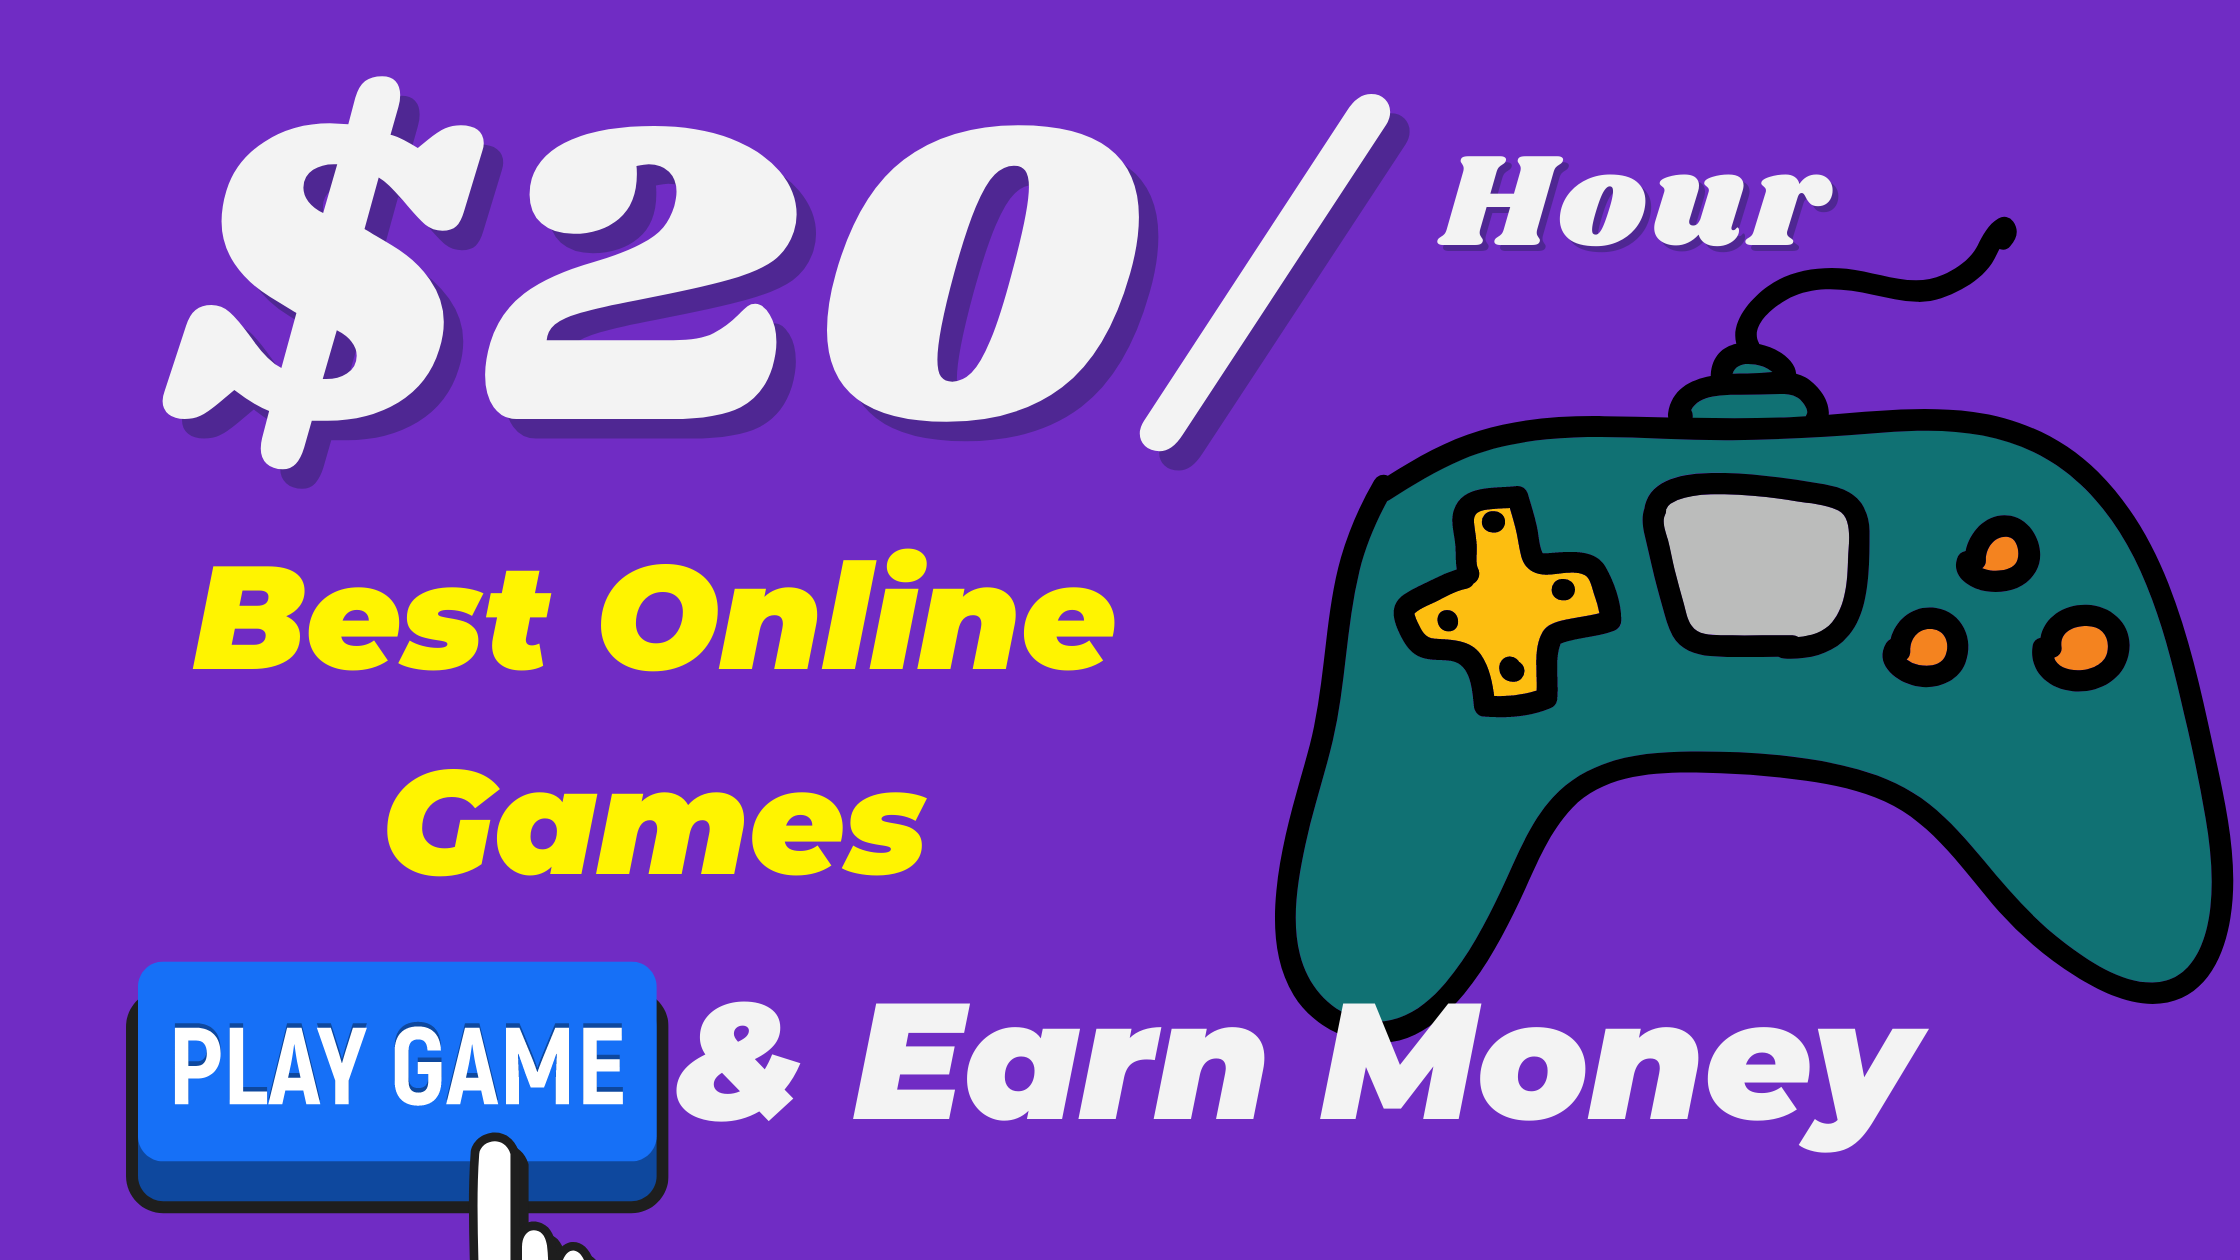 5 Best Online Games To Earn Money $20 Per Hour (Free Register)